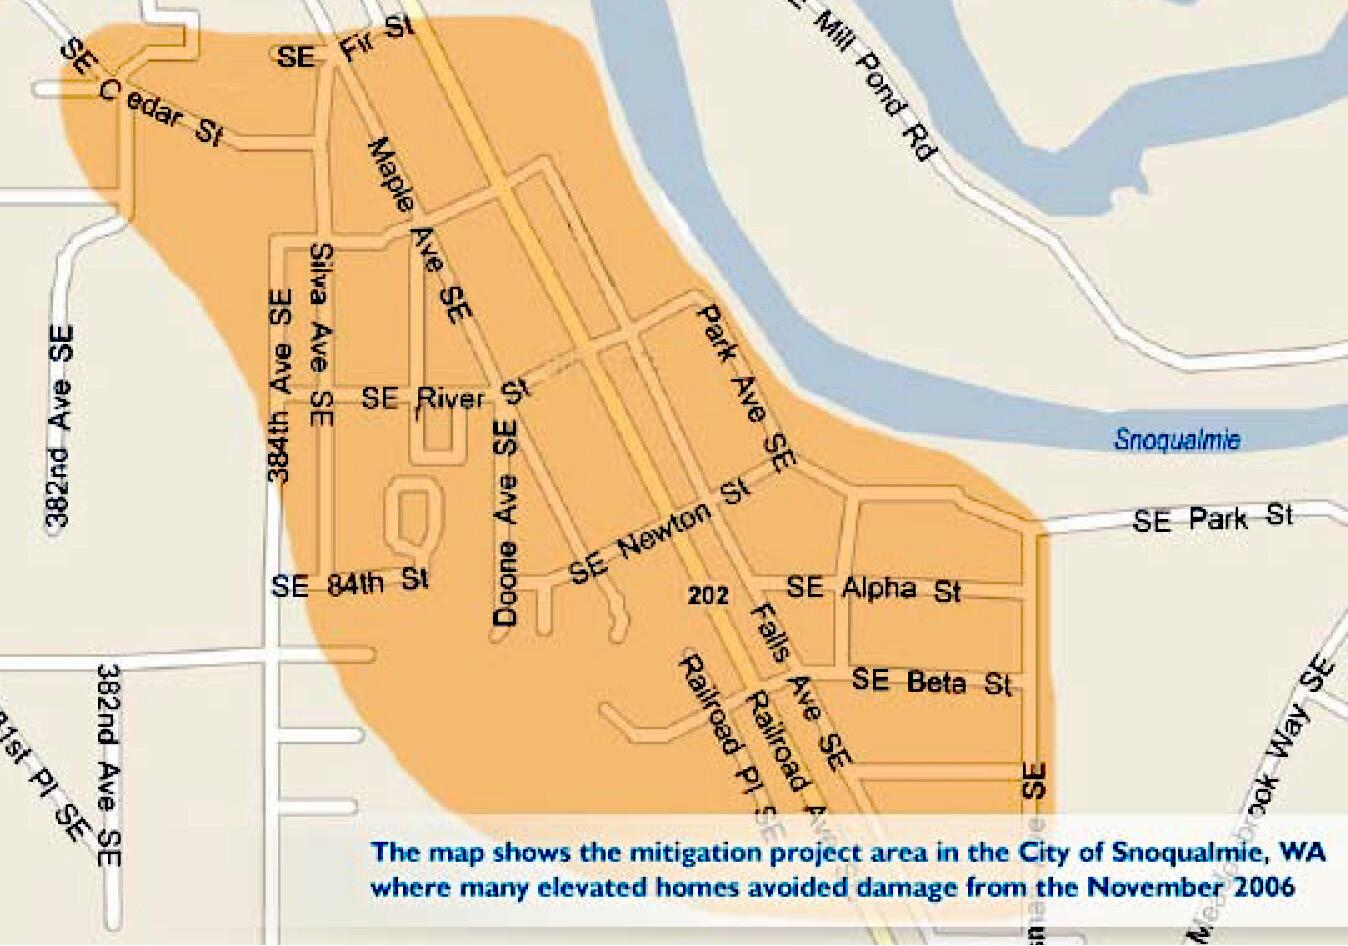 The map shows the mitigation project area in the City of Snoqualmie, Washington where many elevated homes avoided damage from the November 2006 flood